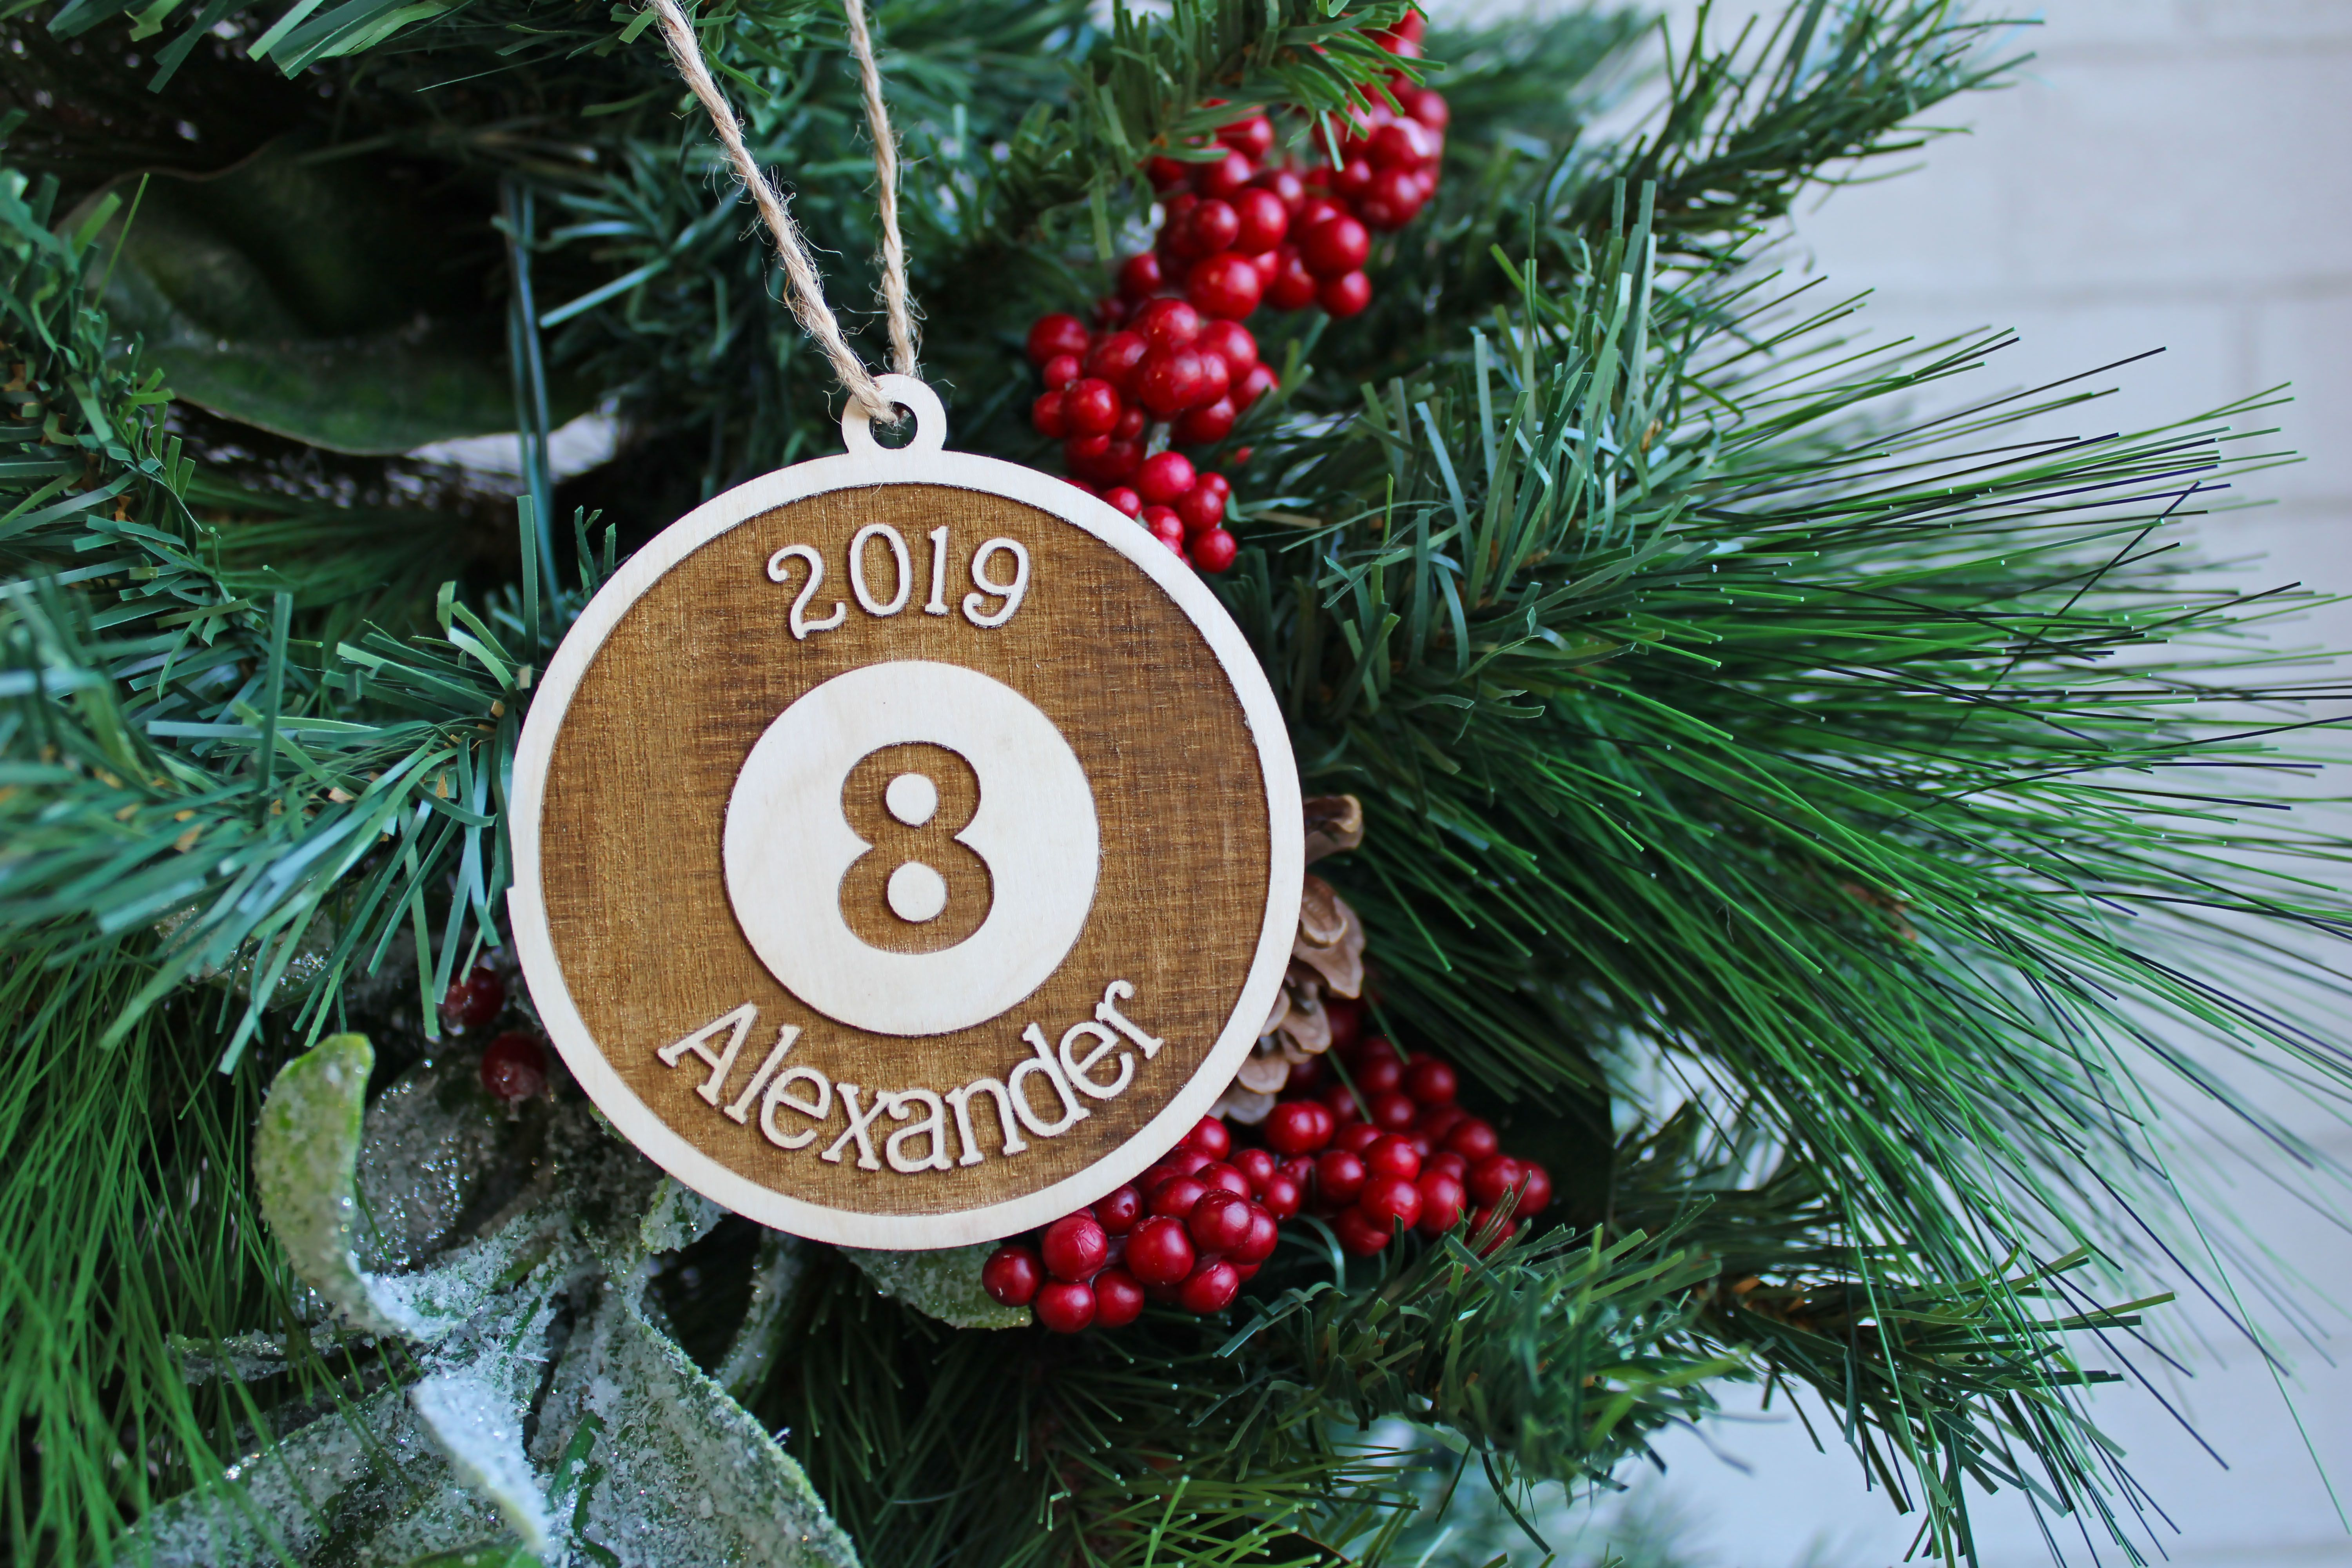 8 Ball Pool Billiards Christmas Ornament Wood